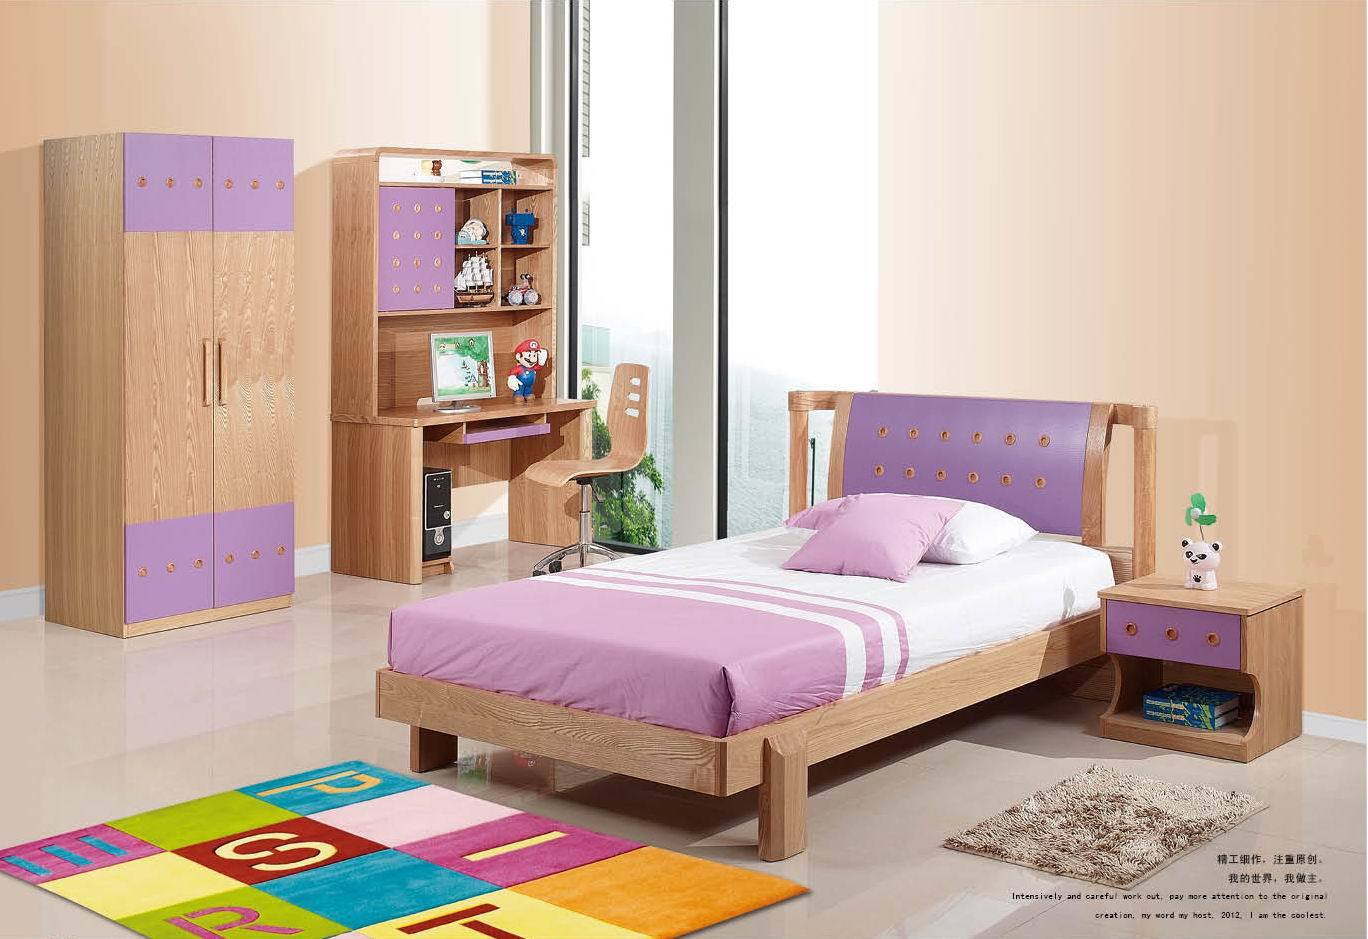 China kids bedroom set jkd 20130 china kids bedroom kids furniture - Kids bedroom ...